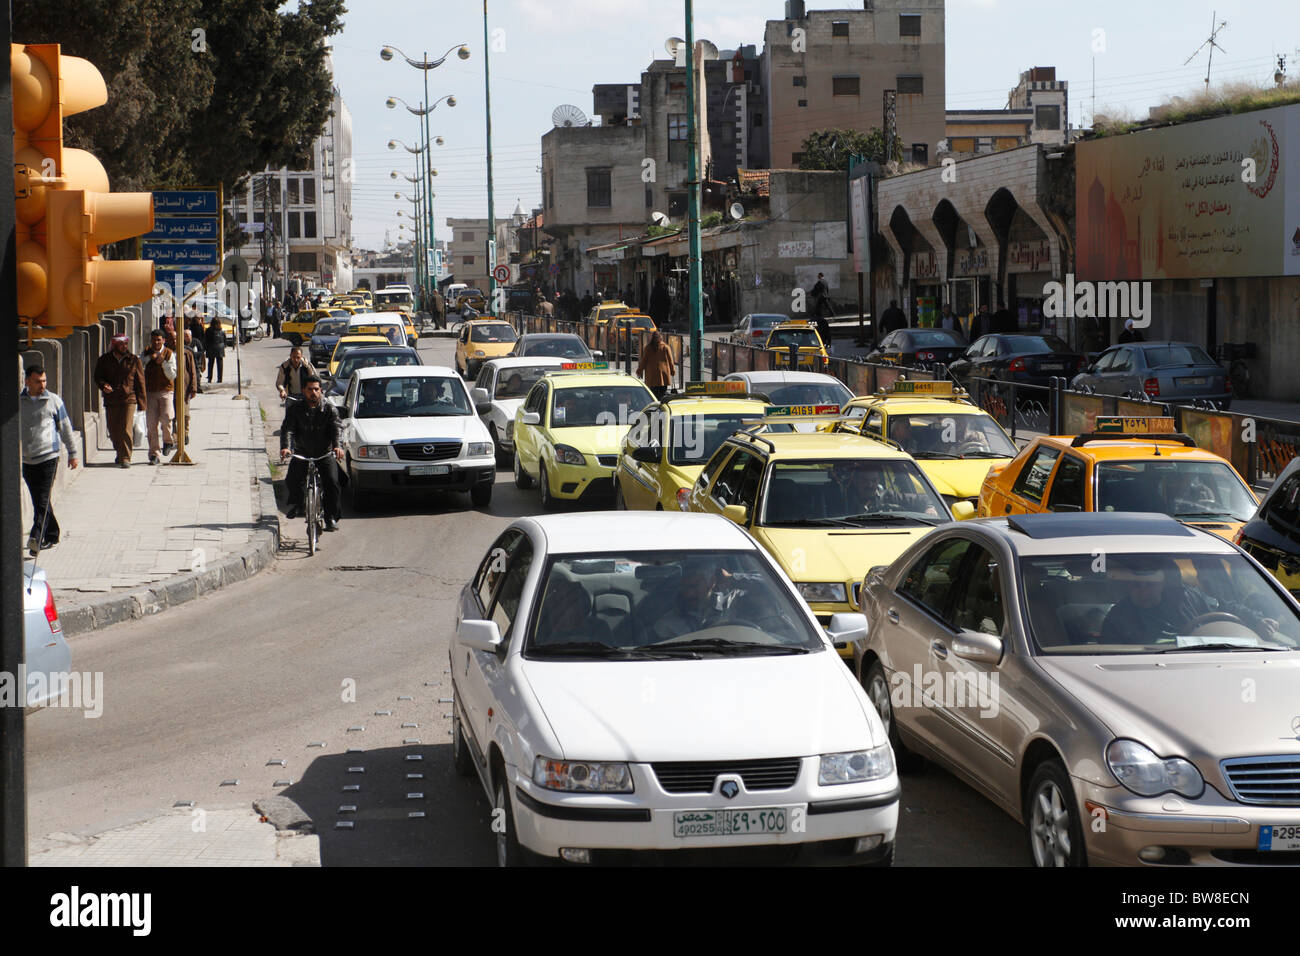 City of Homs in Syria. - Stock Image